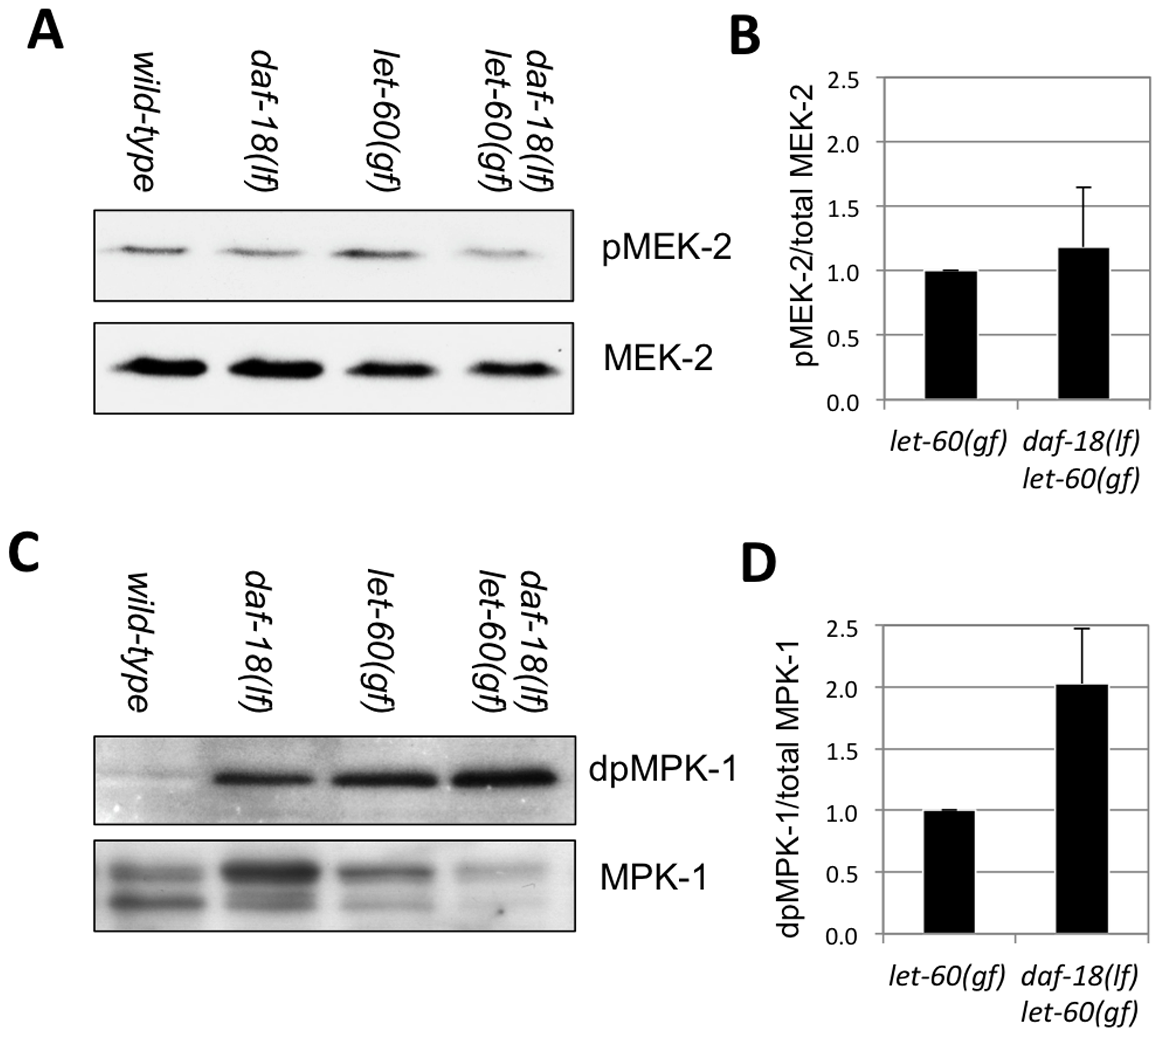 DAF-18 inhibits MPK-1 phosphorylation.